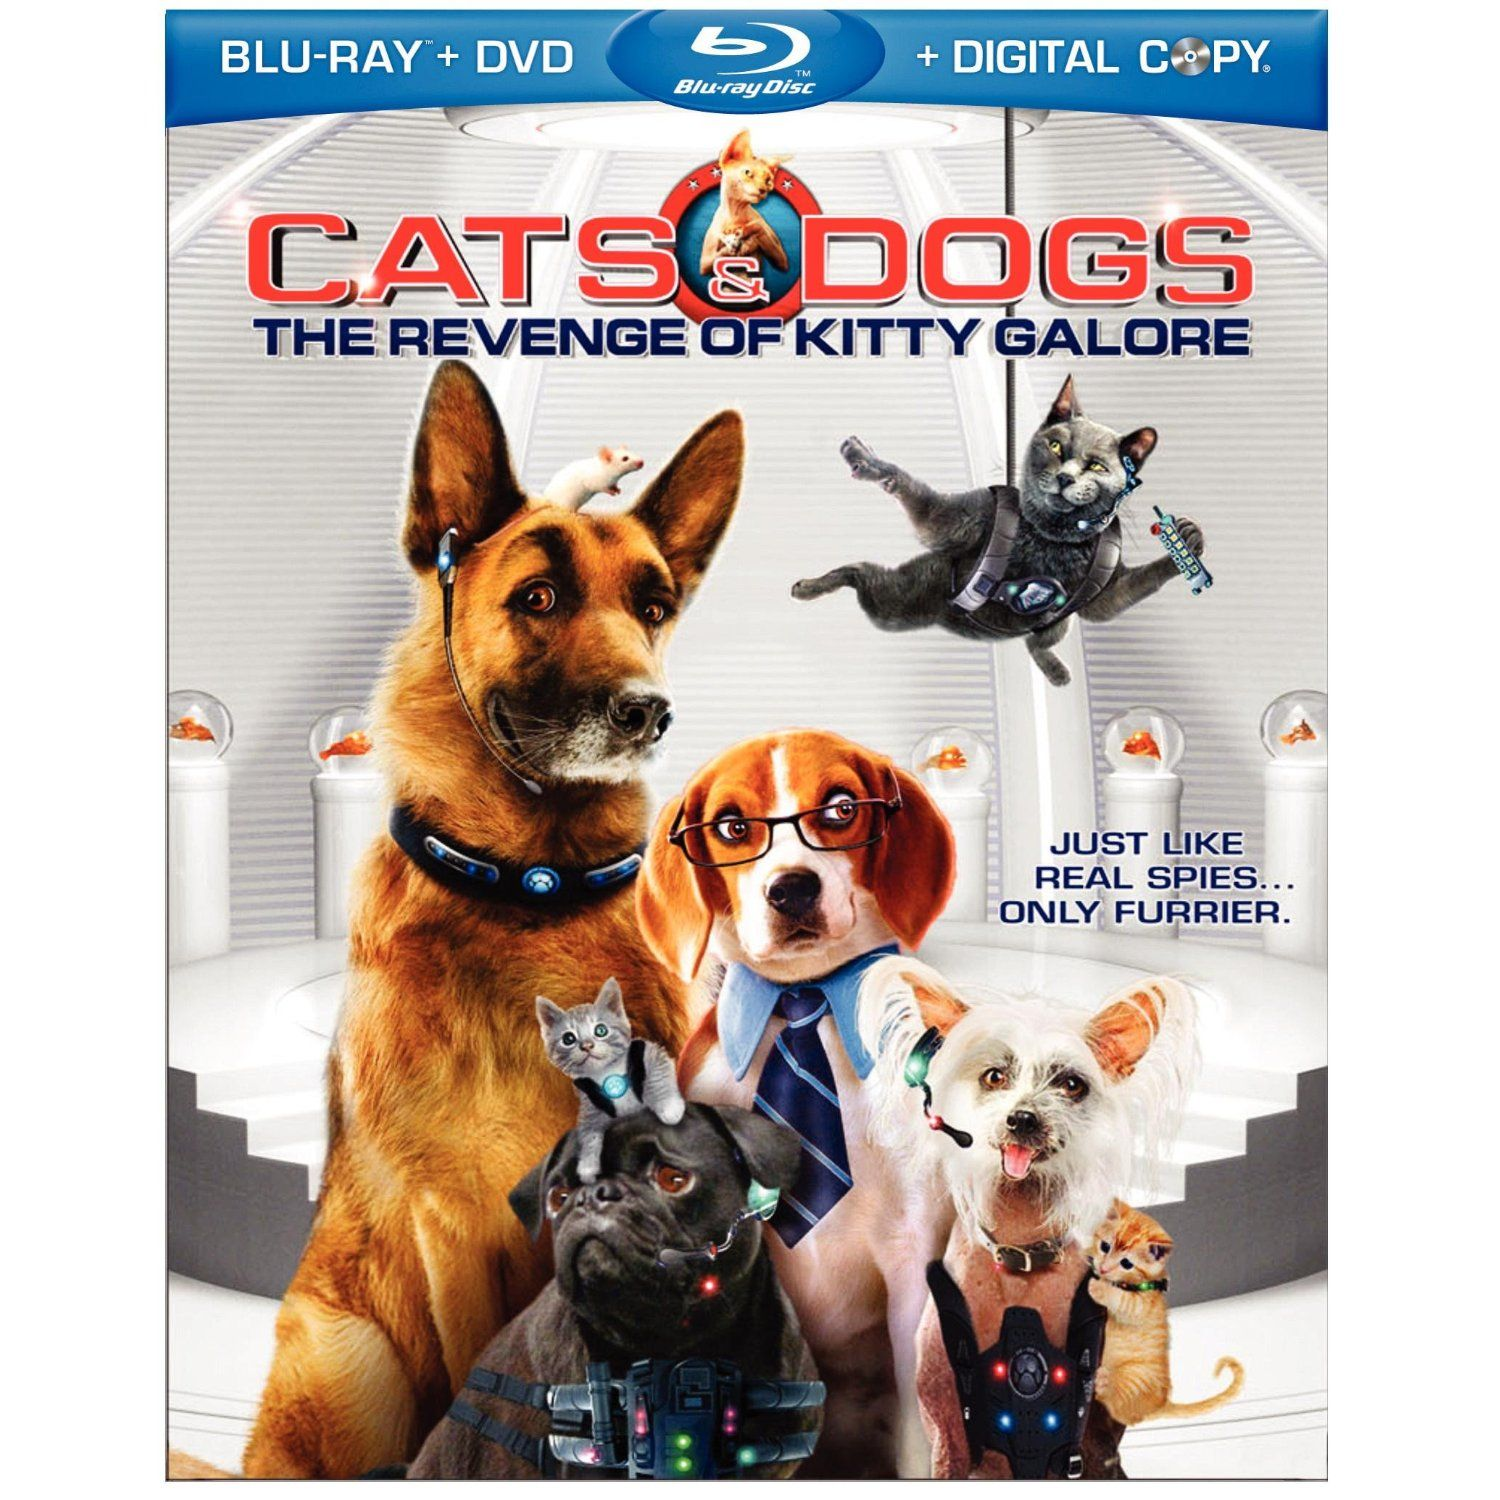 CATS & DOGS THE REVENGE OF KITTY GALORE Blu ray Review